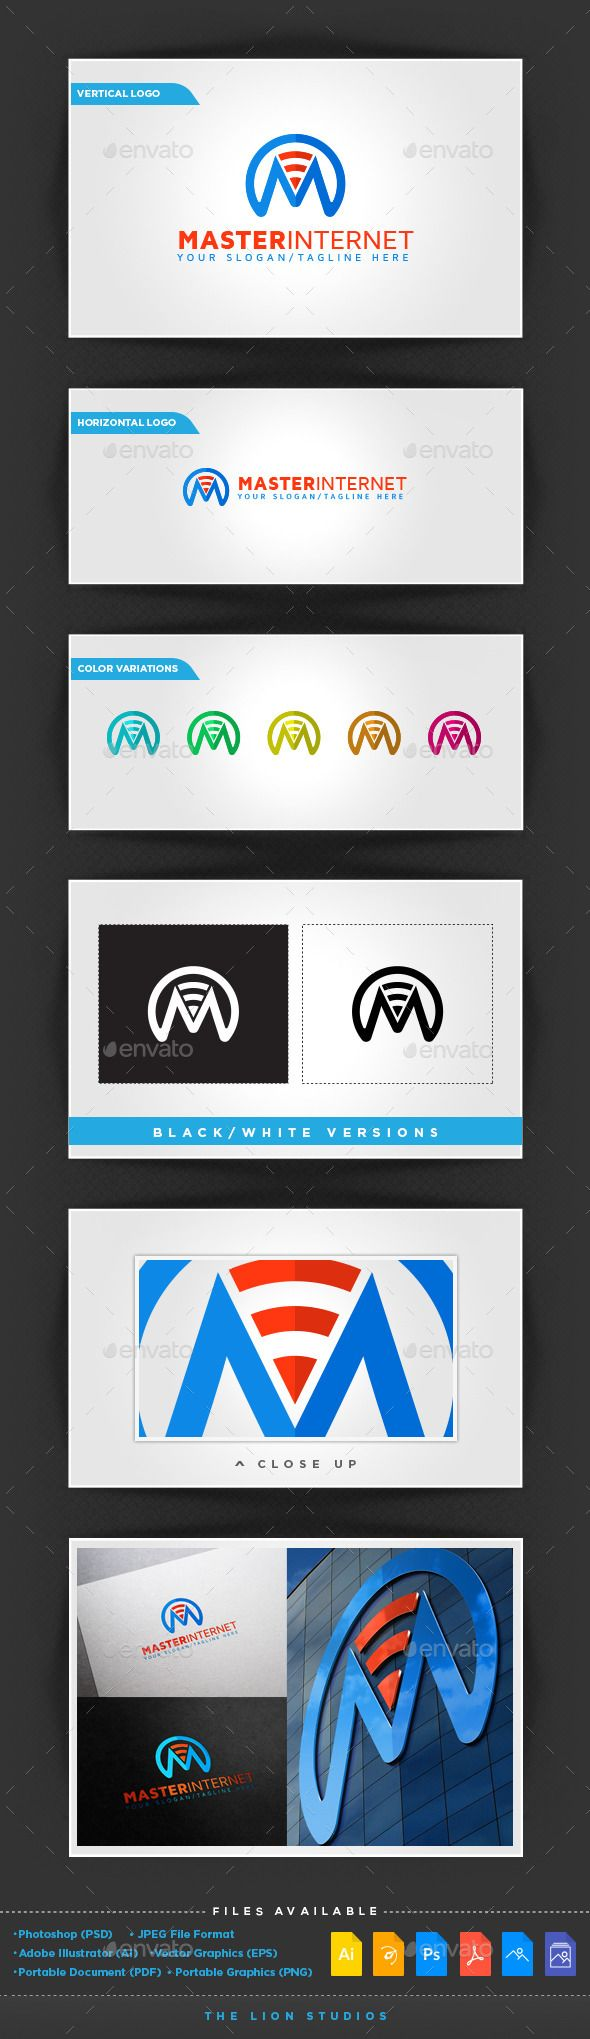 Master Internet Logo Template — Photoshop PSD #internet #m branding • Available here → https://graphicriver.net/item/master-internet-logo-template/10009117?ref=pxcr